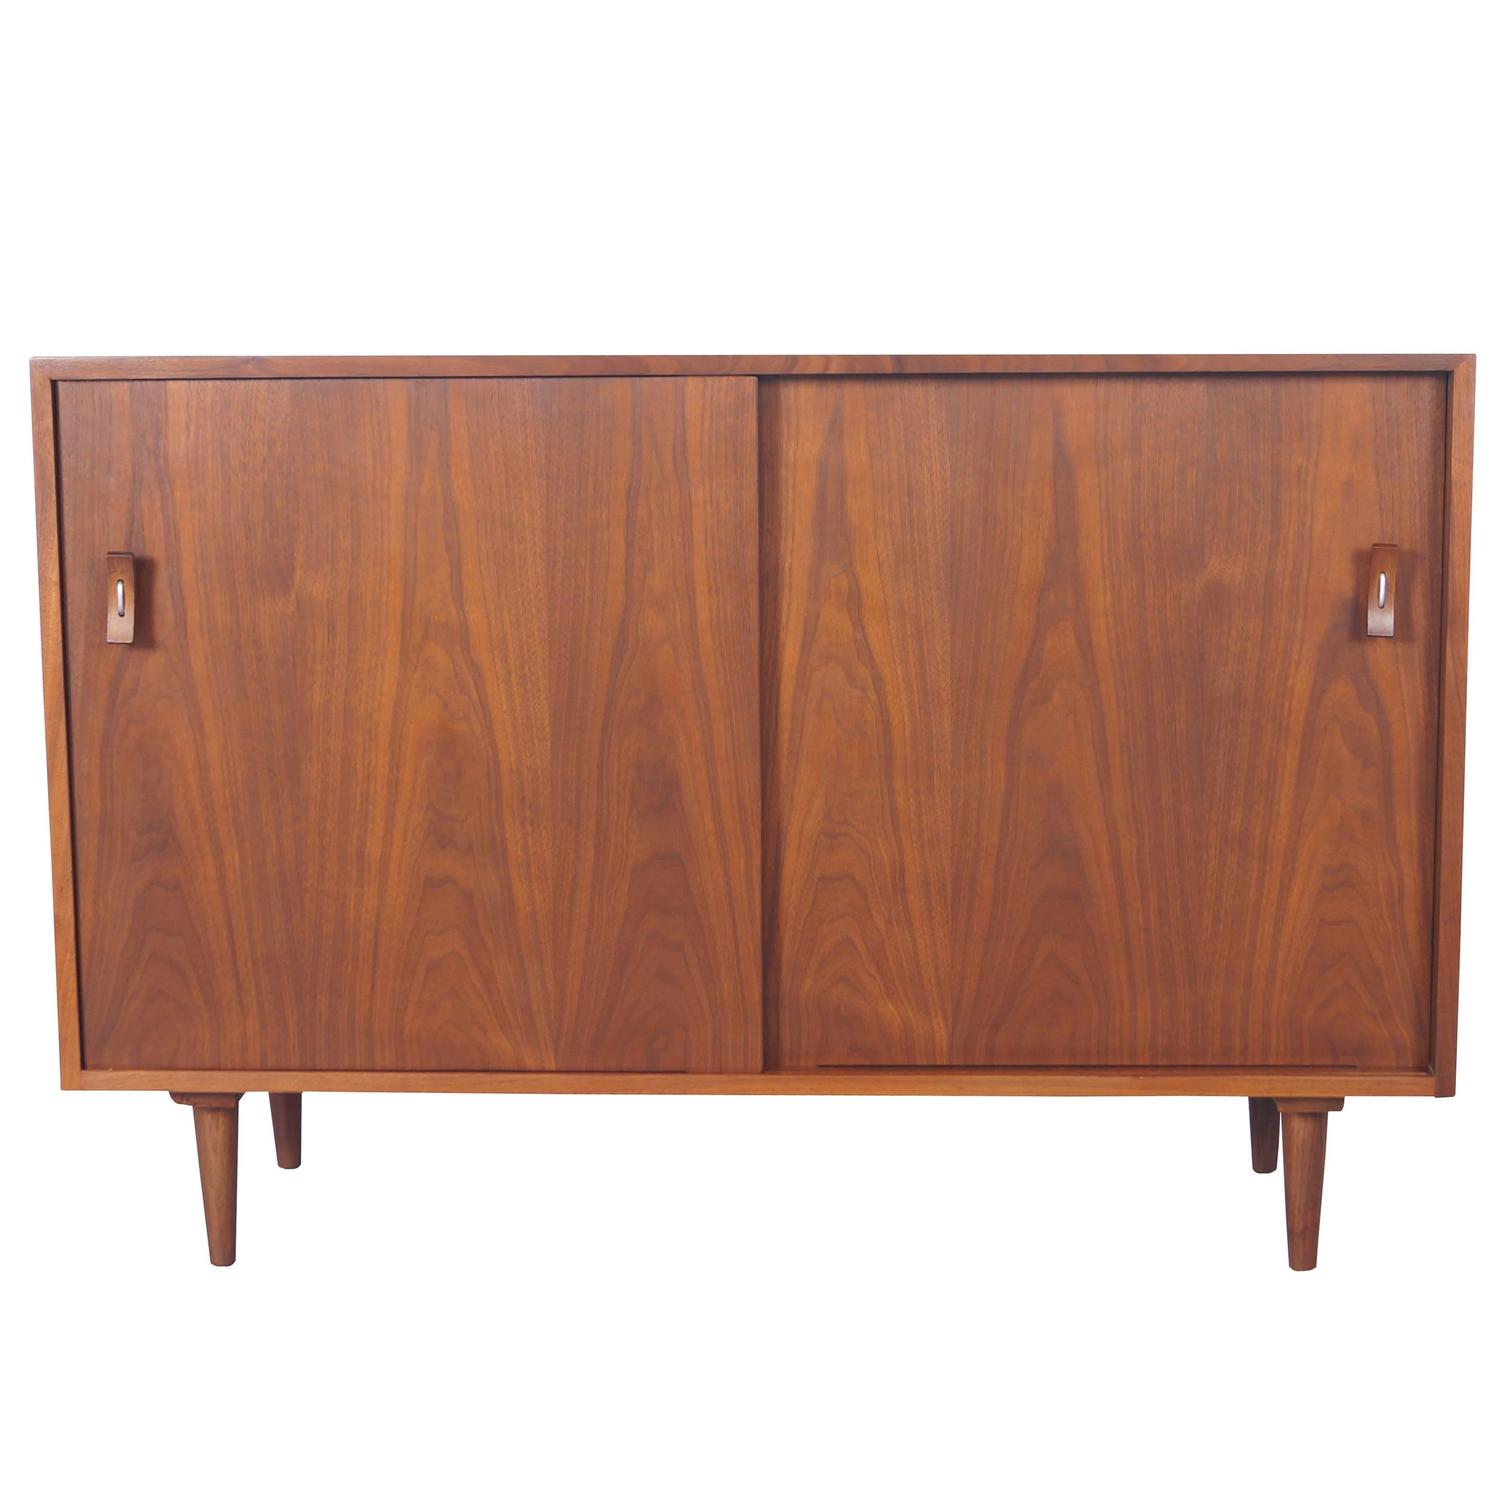 Nussbaum Sideboard Vintage Walnut Sideboard By Stanley Young For Sale At 1stdibs